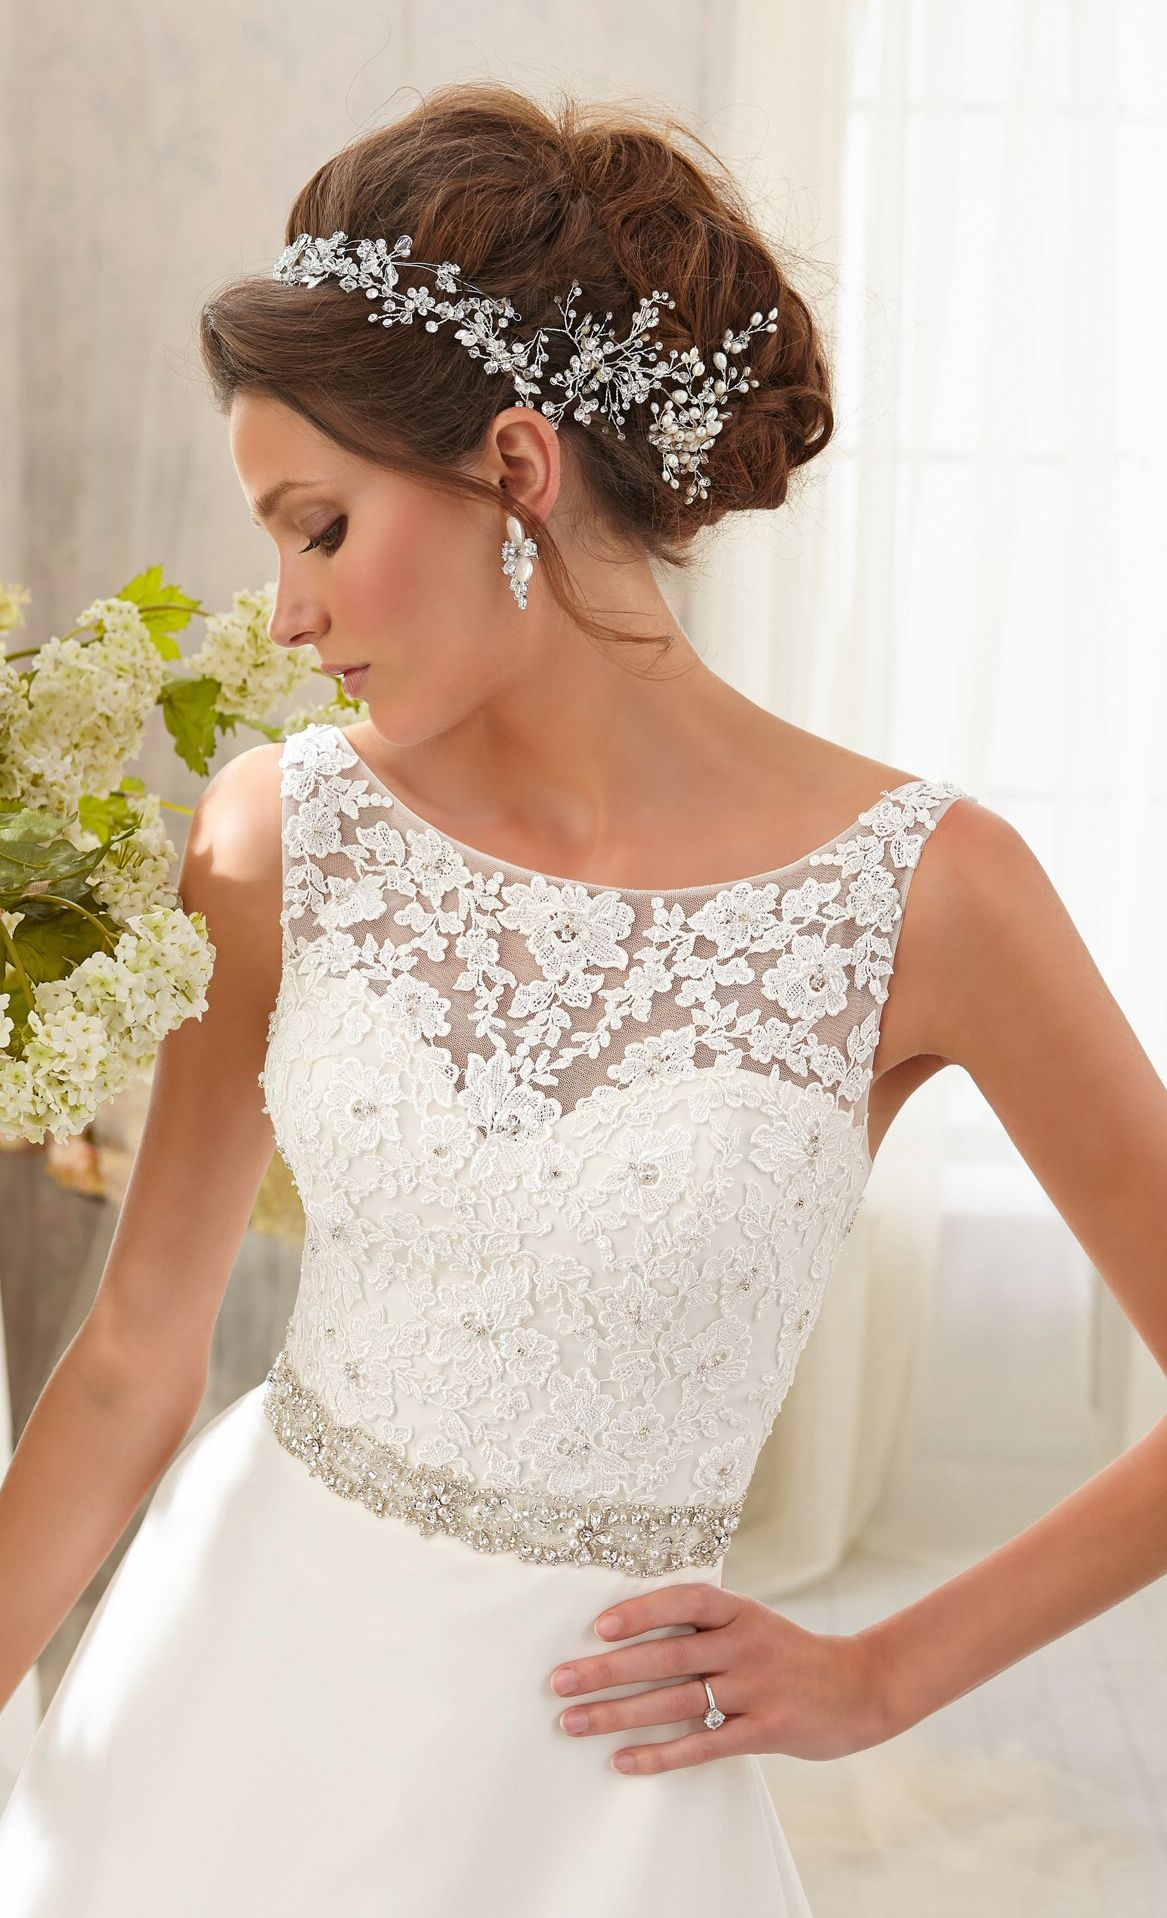 Obsessed With The Gorgeous Lace Detail And Embellished Waist Wedding Dress: Sparkly Accessories For Wedding Dress At Websimilar.org